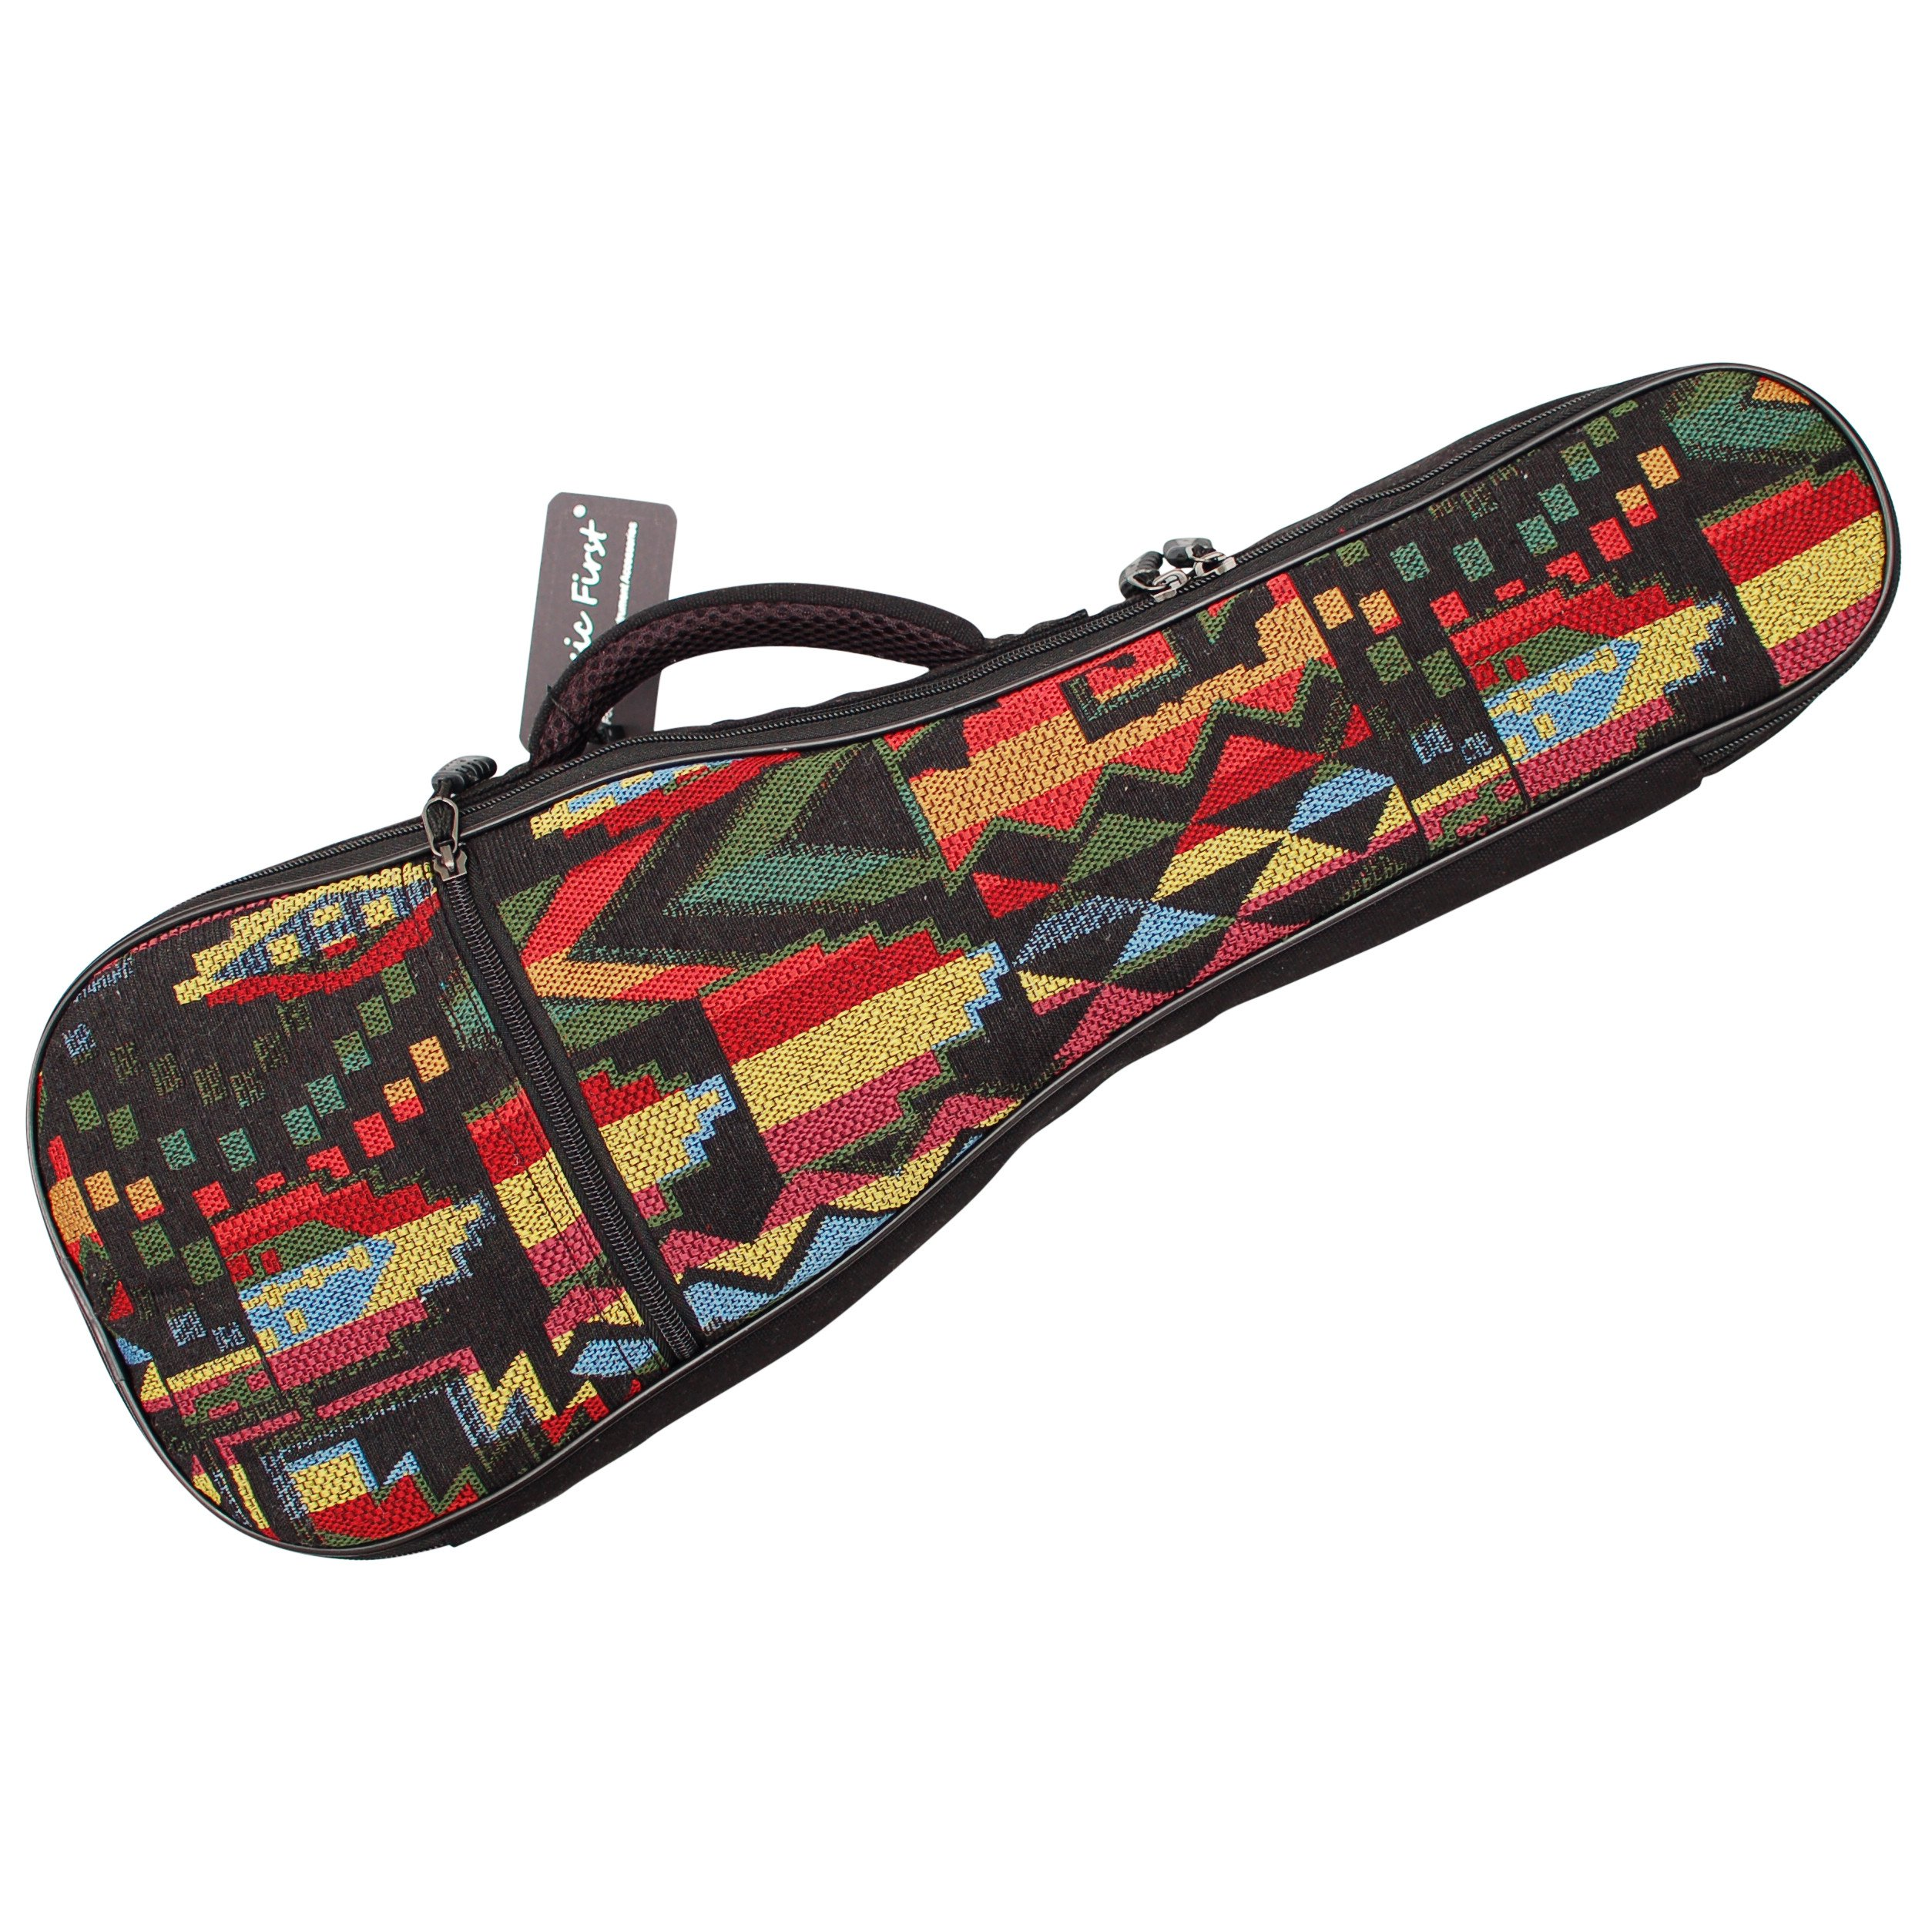 MUSIC FIRST Cotton Woven''THE NATIVE'' Vintage Style Ukulele case ukulele bag ukulele gig bag (26~27 inch Tenor, The Native)